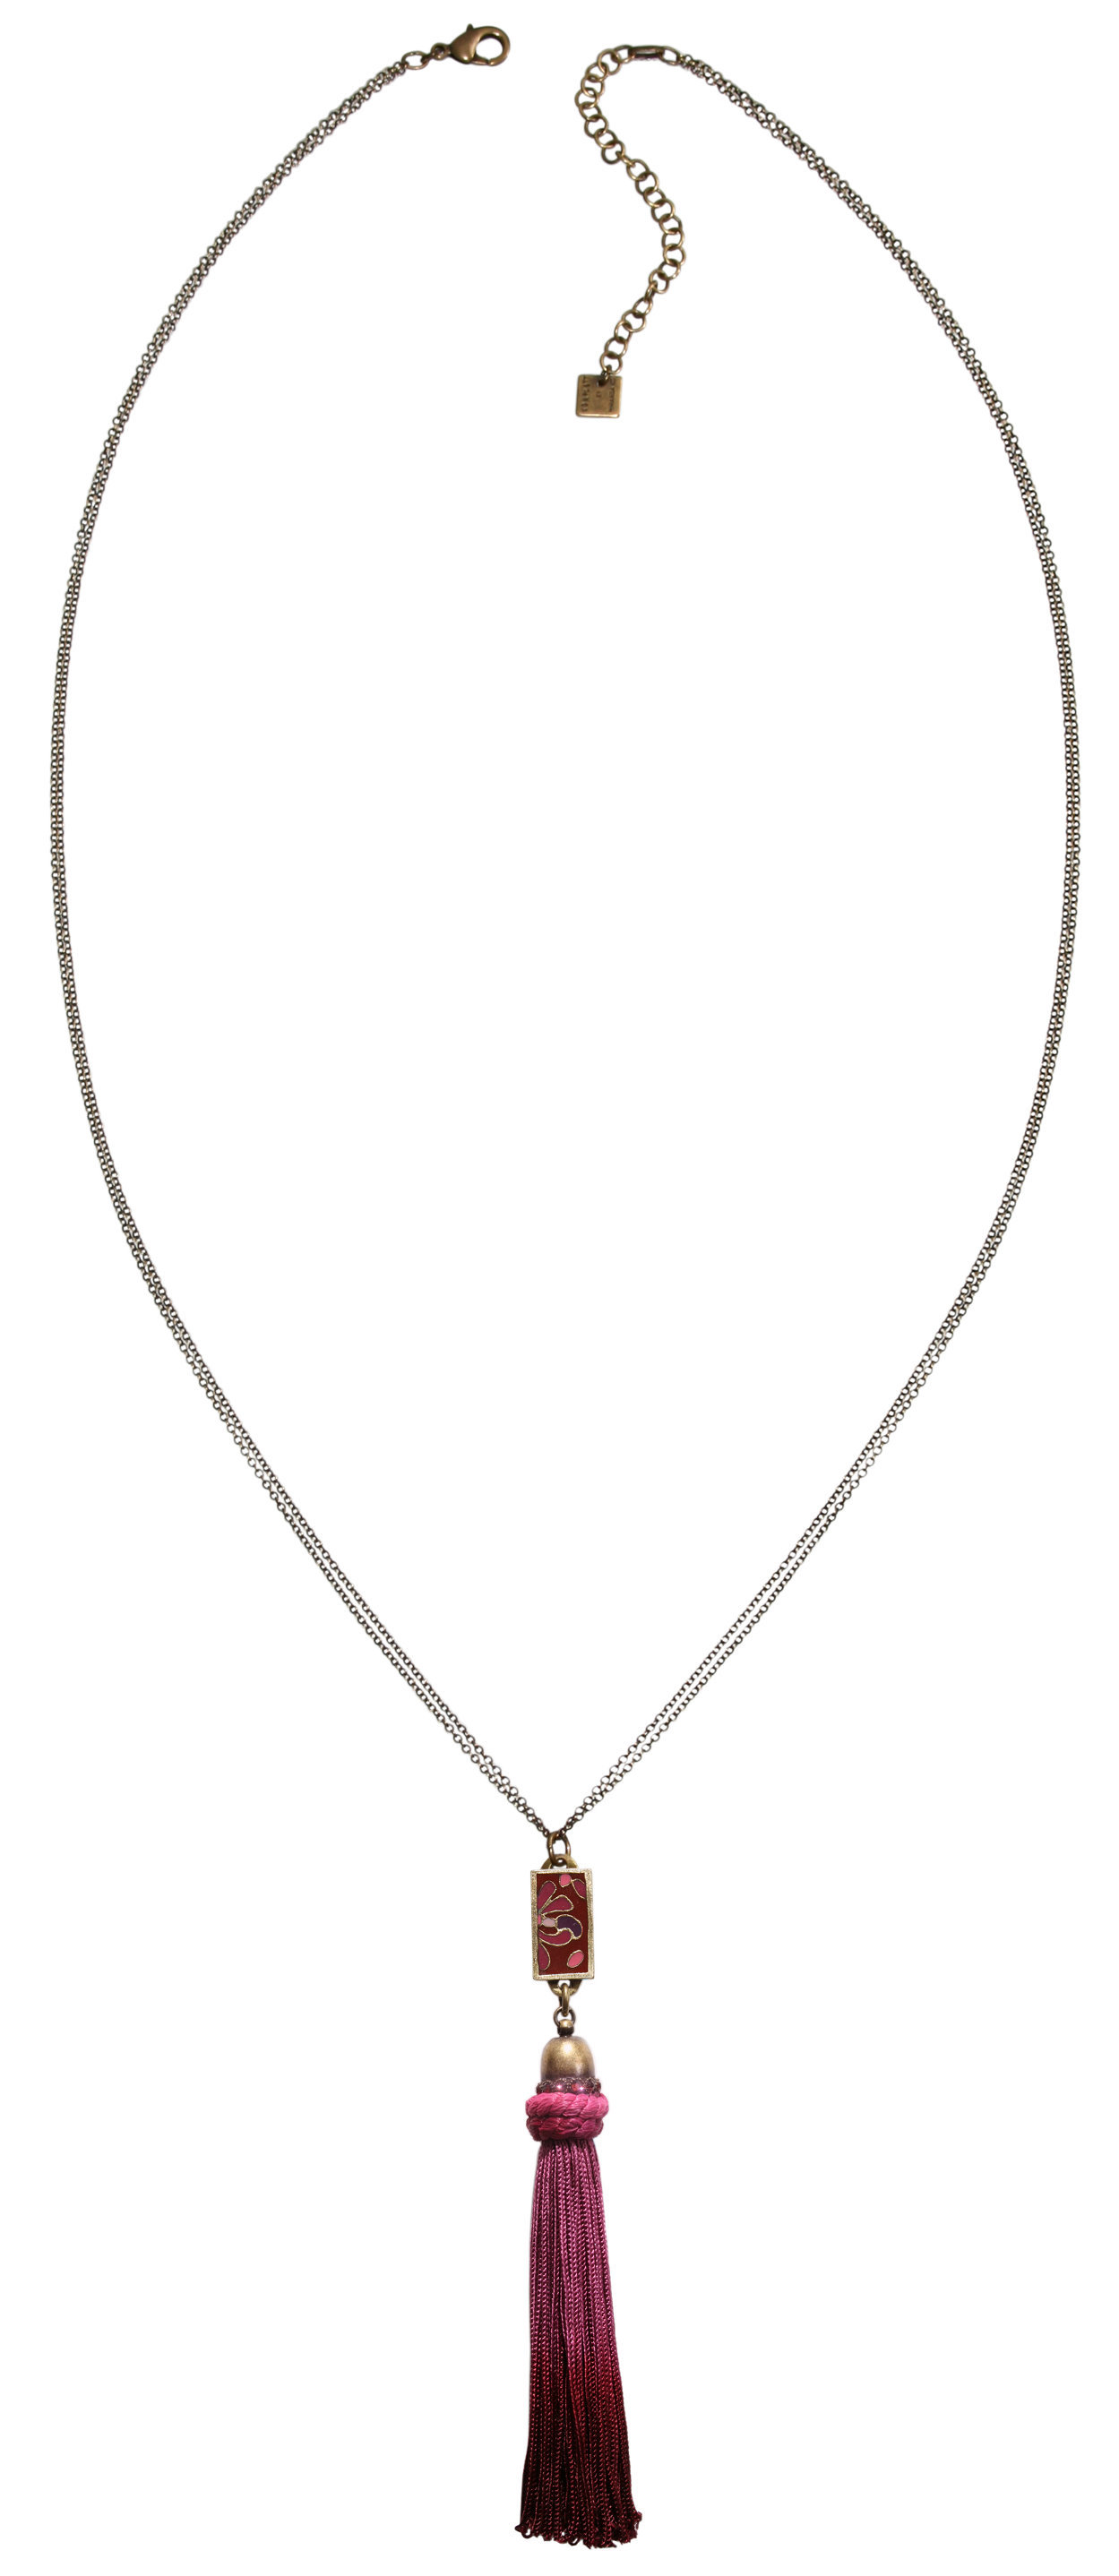 Yoga necklace ネックレス